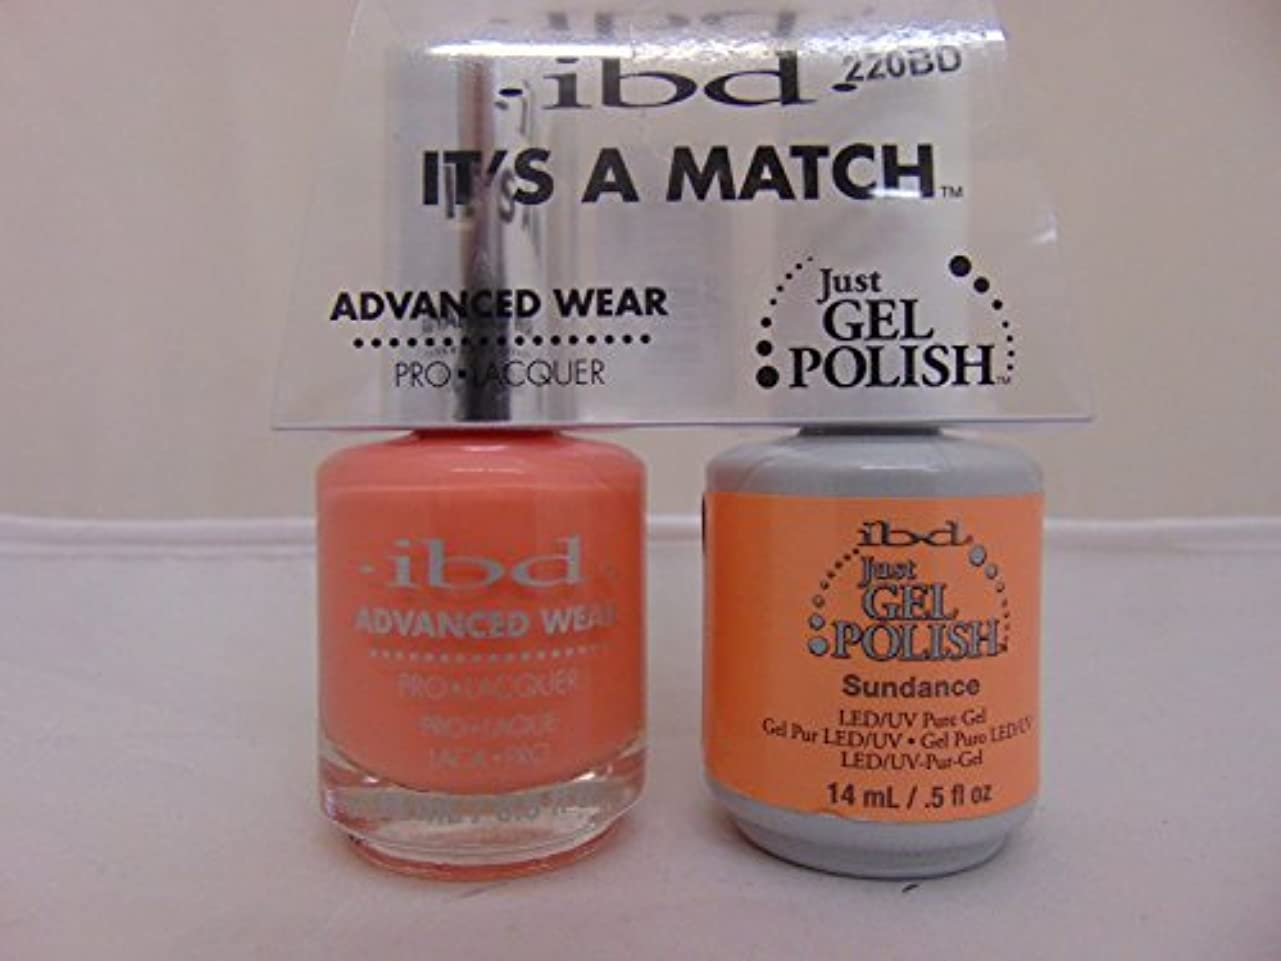 ibd - It's A Match -Duo Pack- Sundance - 14 mL / 0.5 oz Each